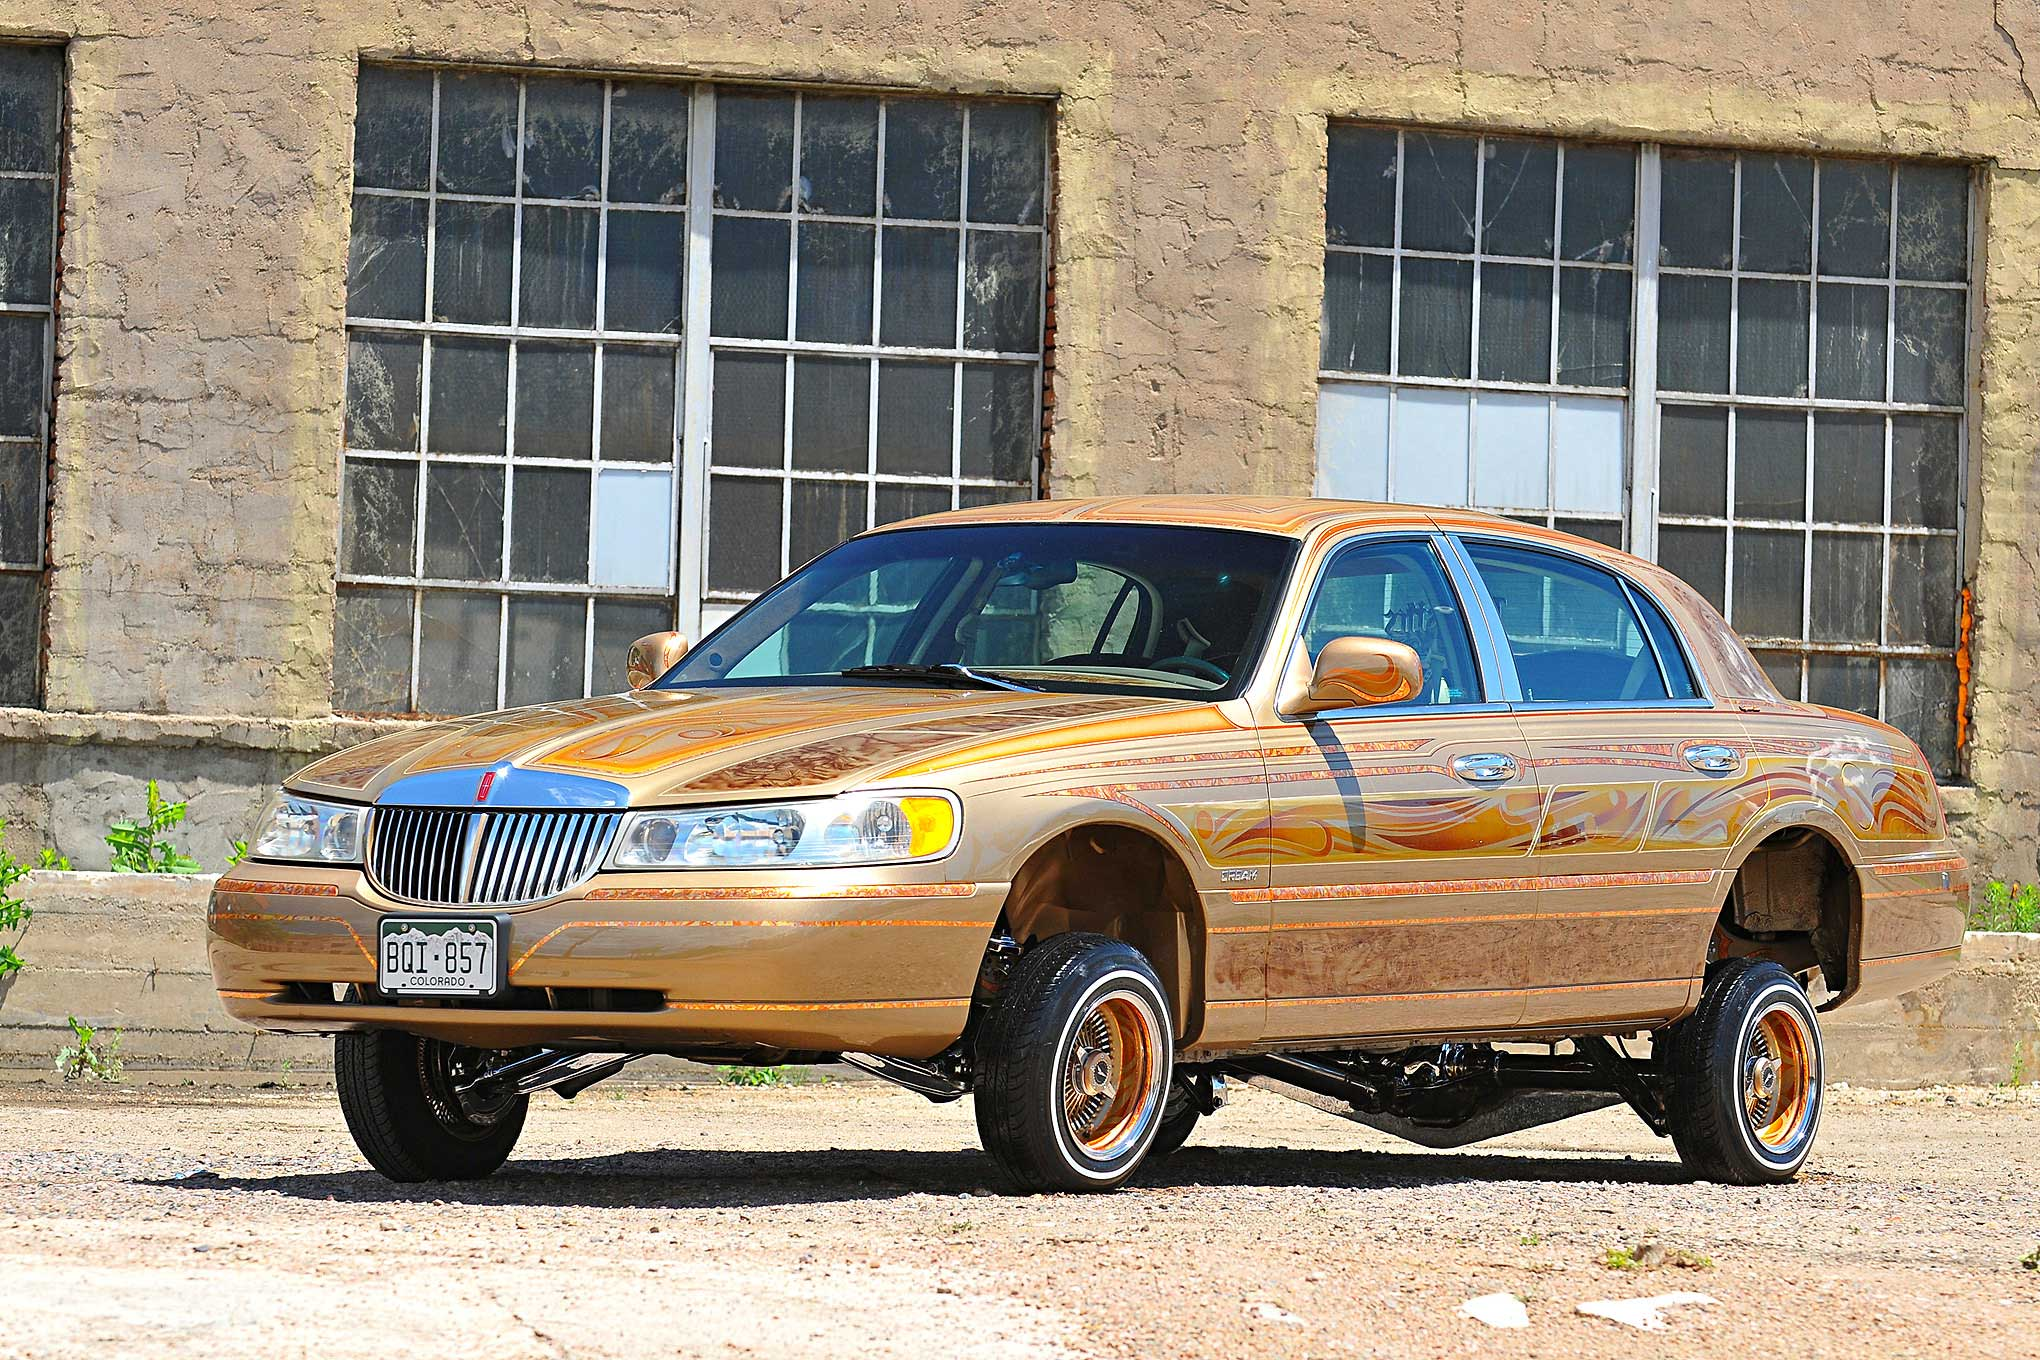 1998 Lincoln Town Car Lifes Golden Lowrider 1 29